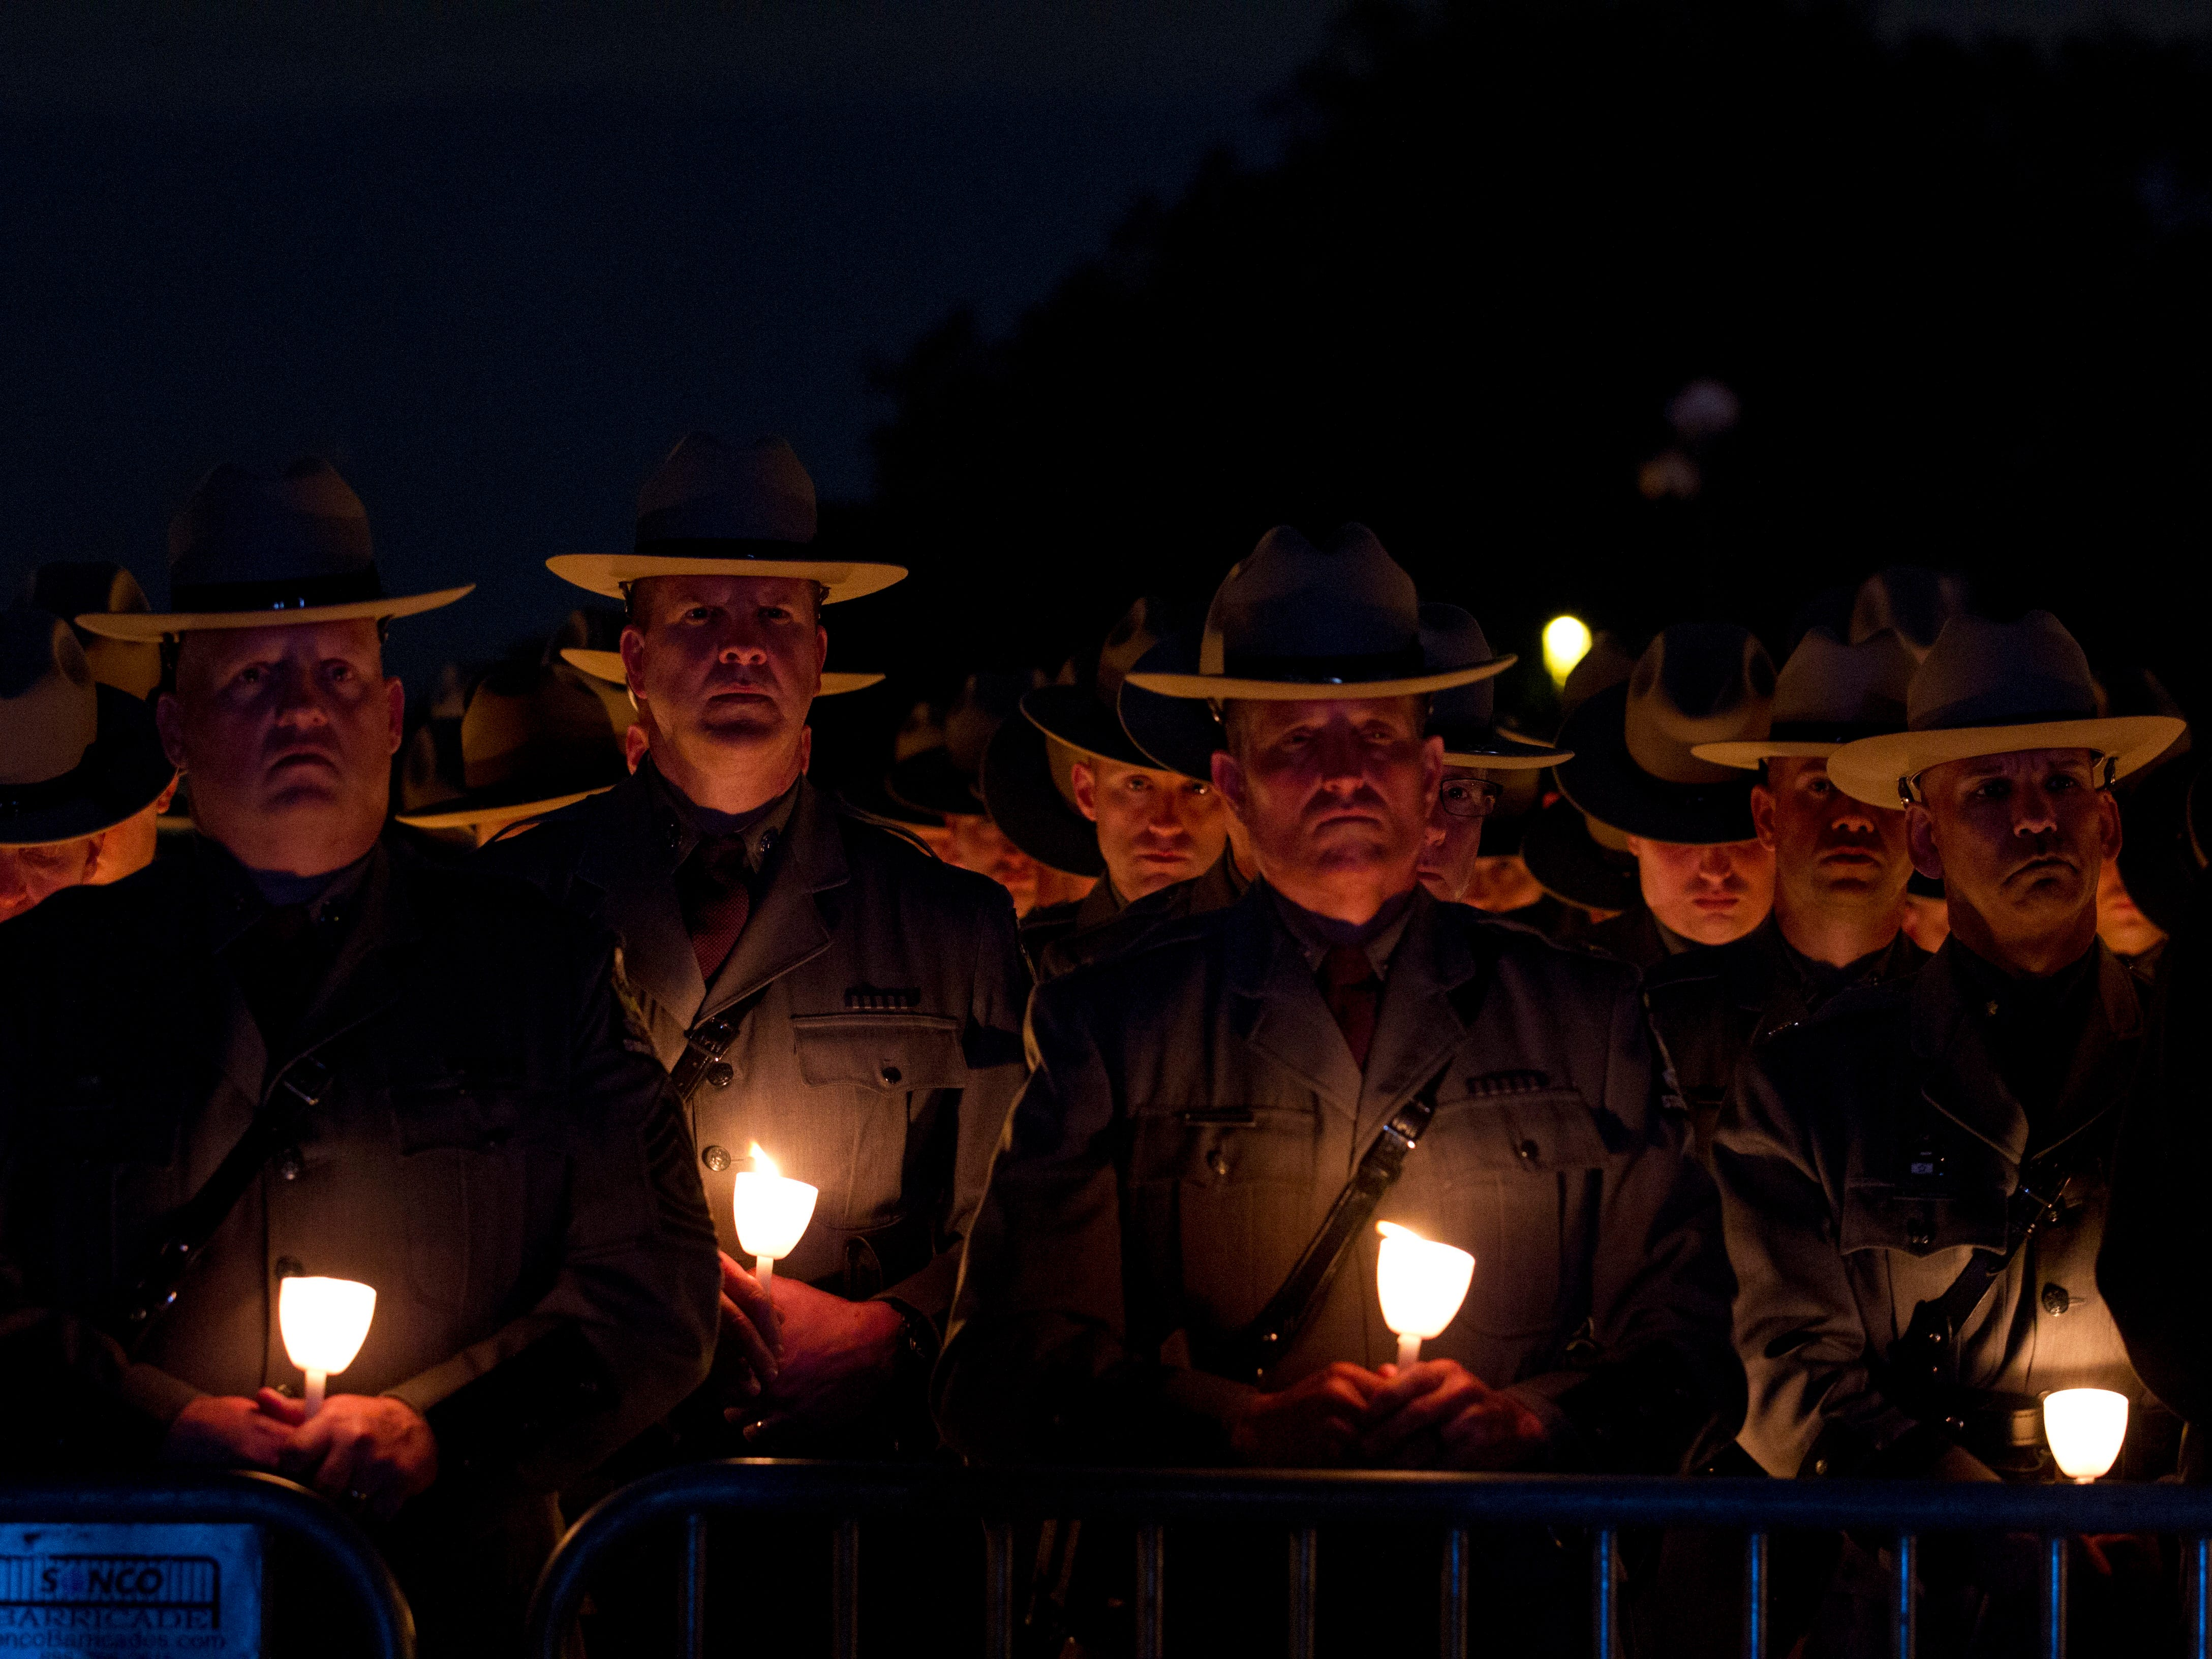 Law enforcement personnel hold candles during the National Law Enforcement Officers Memorial Fund Annual Candlelight Vigil to commemorate new names added to the monument, in a ceremony at the National Mall in Washington, Monday May 13, 2019.